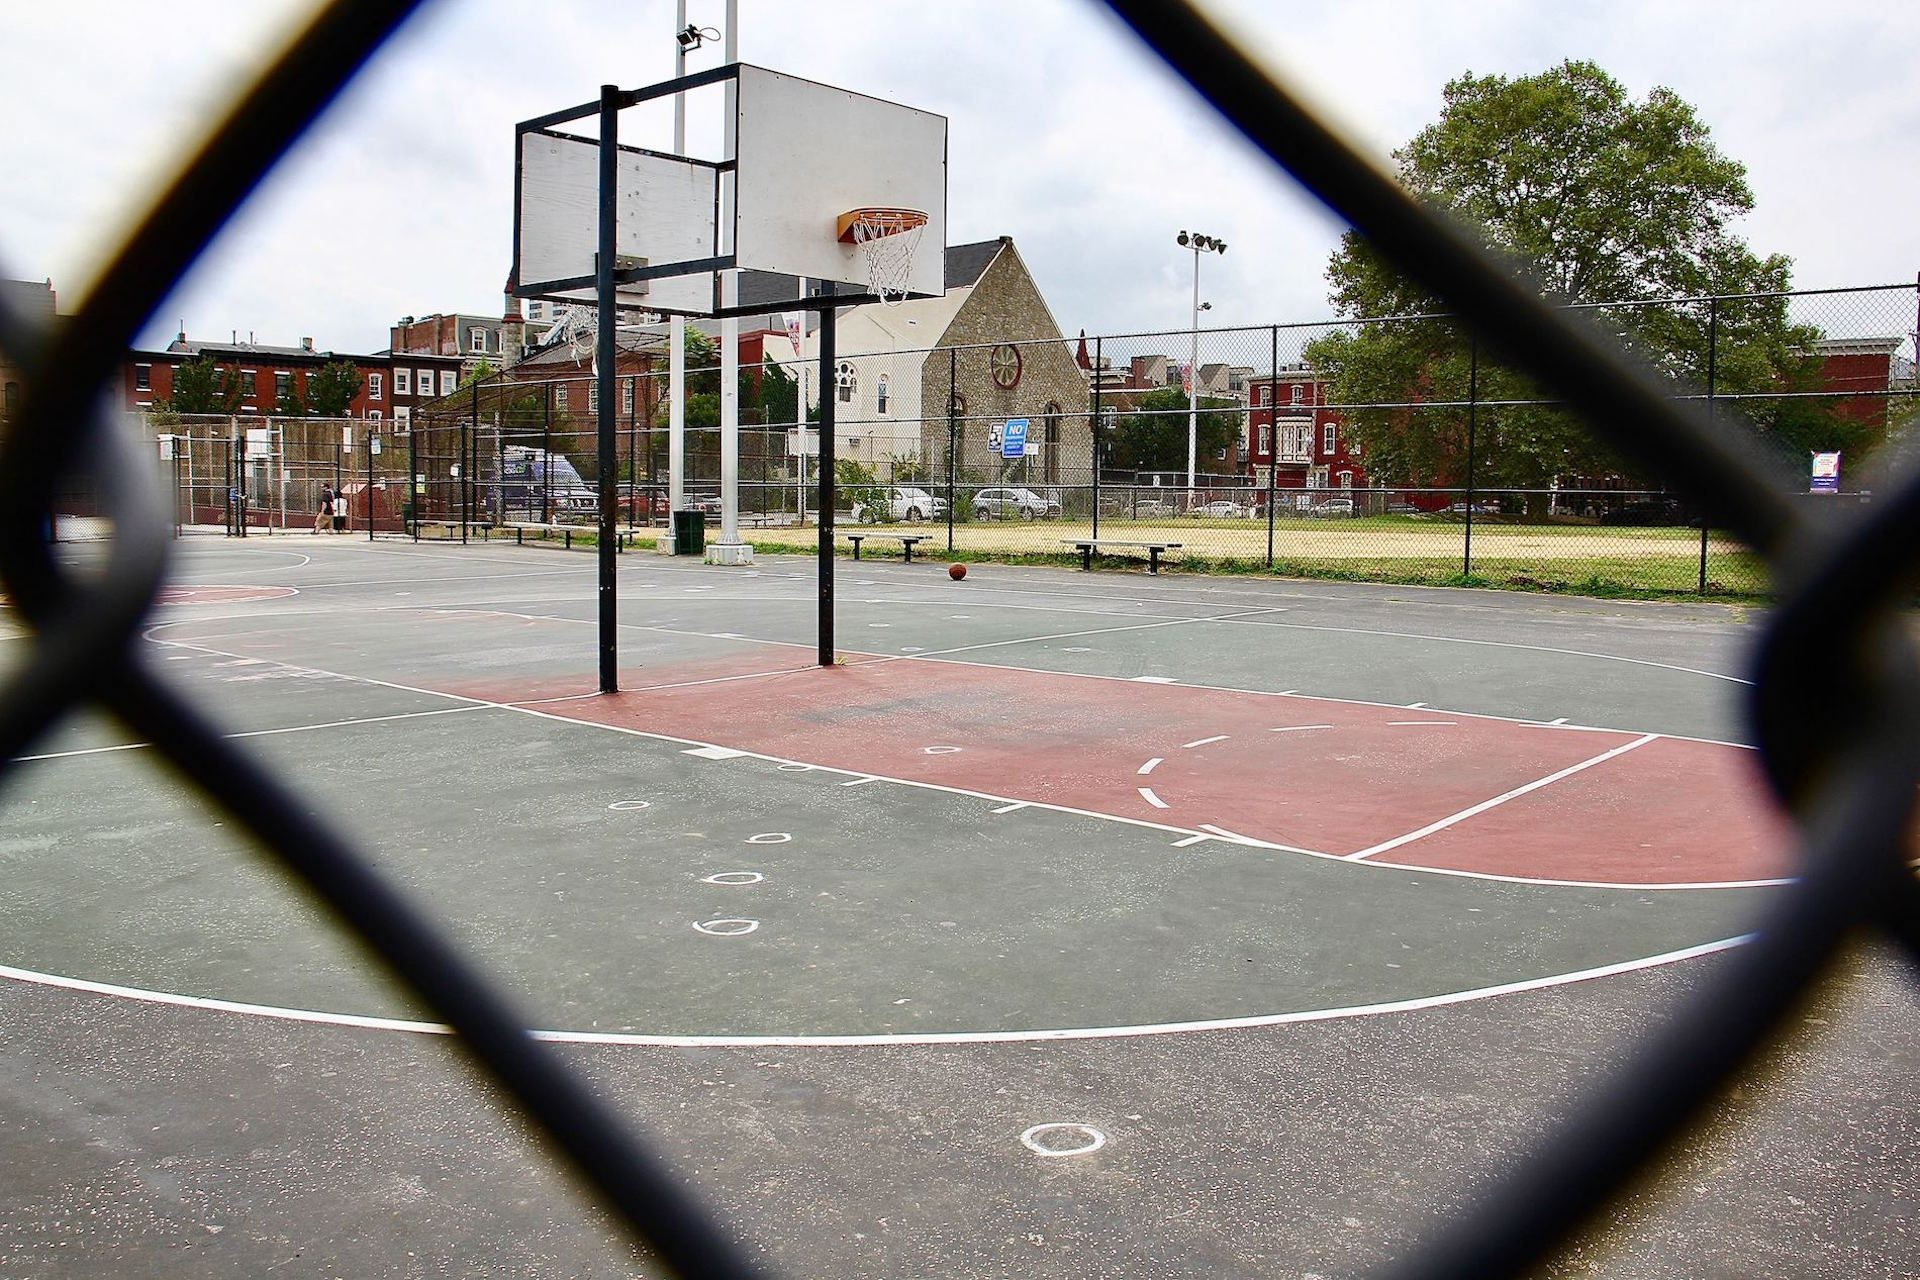 The basketball court at Roberto Clemente Playground is padlocked after five people were shot, two fatally. Chalk circles mark where bullet casings fell.